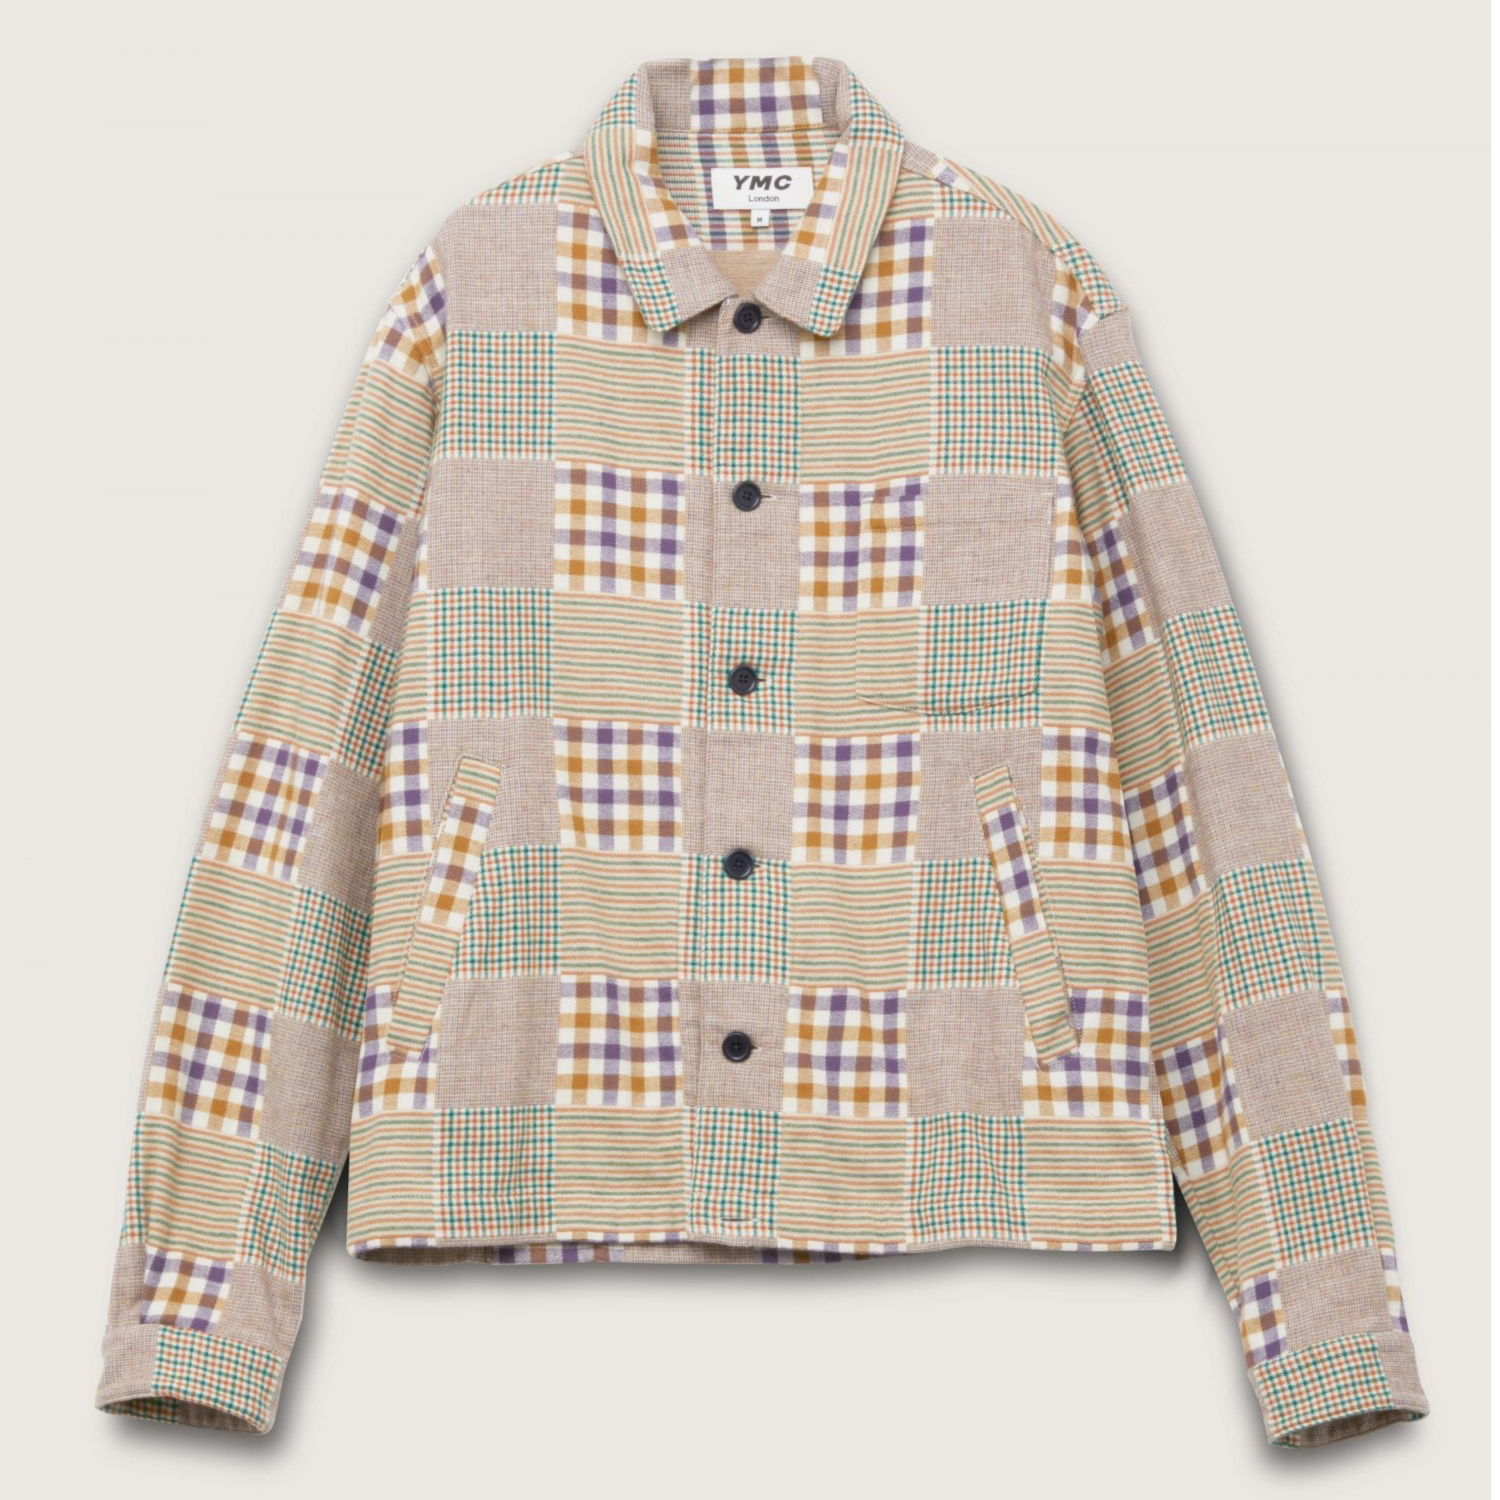 Ymc Bowling Cotton Flannel Check Shirt - Multi